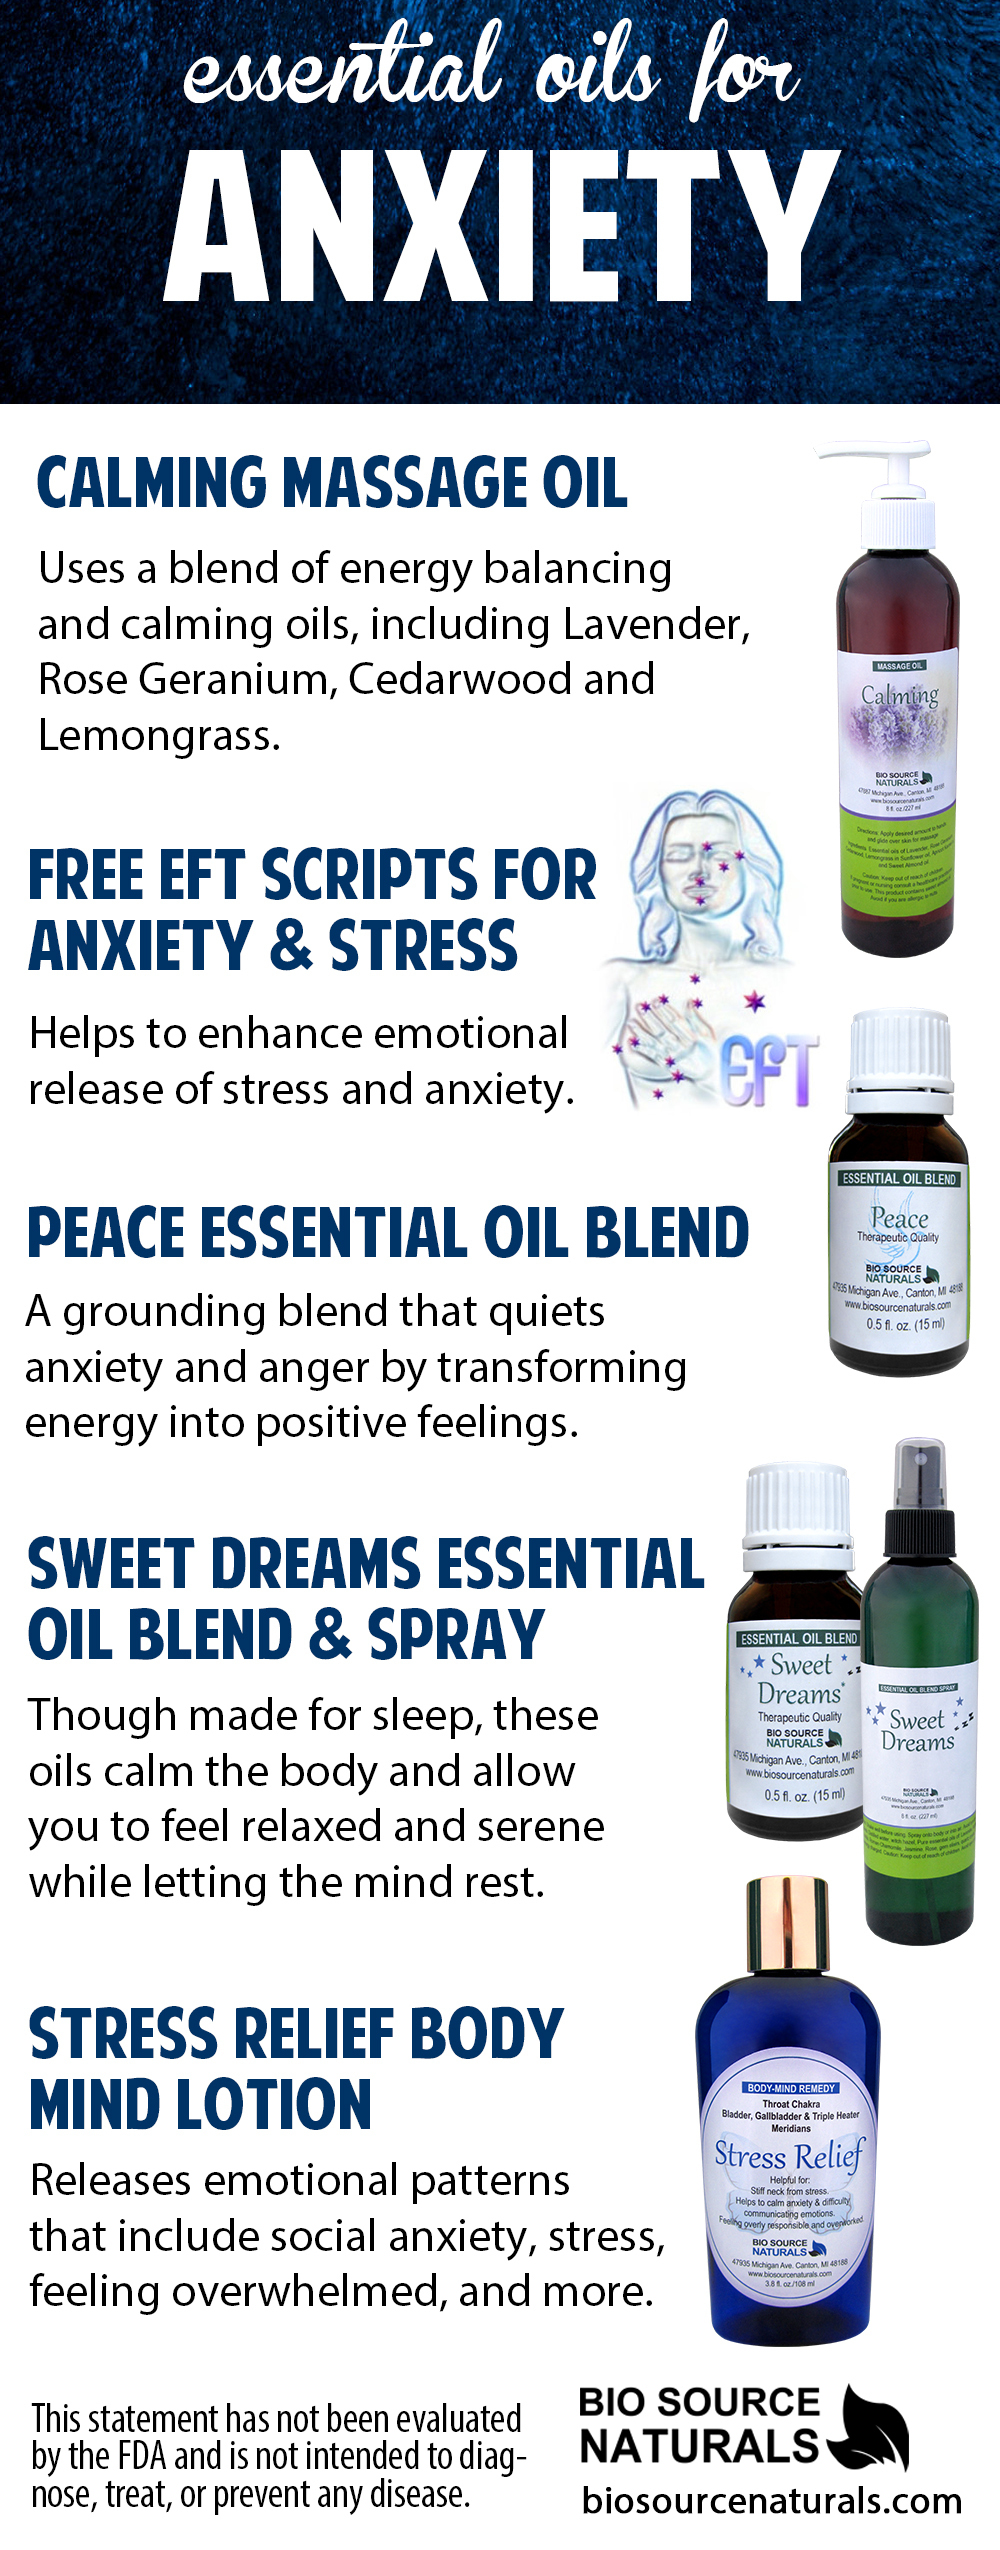 FREE EFT (Emotional Freedom Technique) Tapping Scripts for Anxiety/Stress  - EOTT™